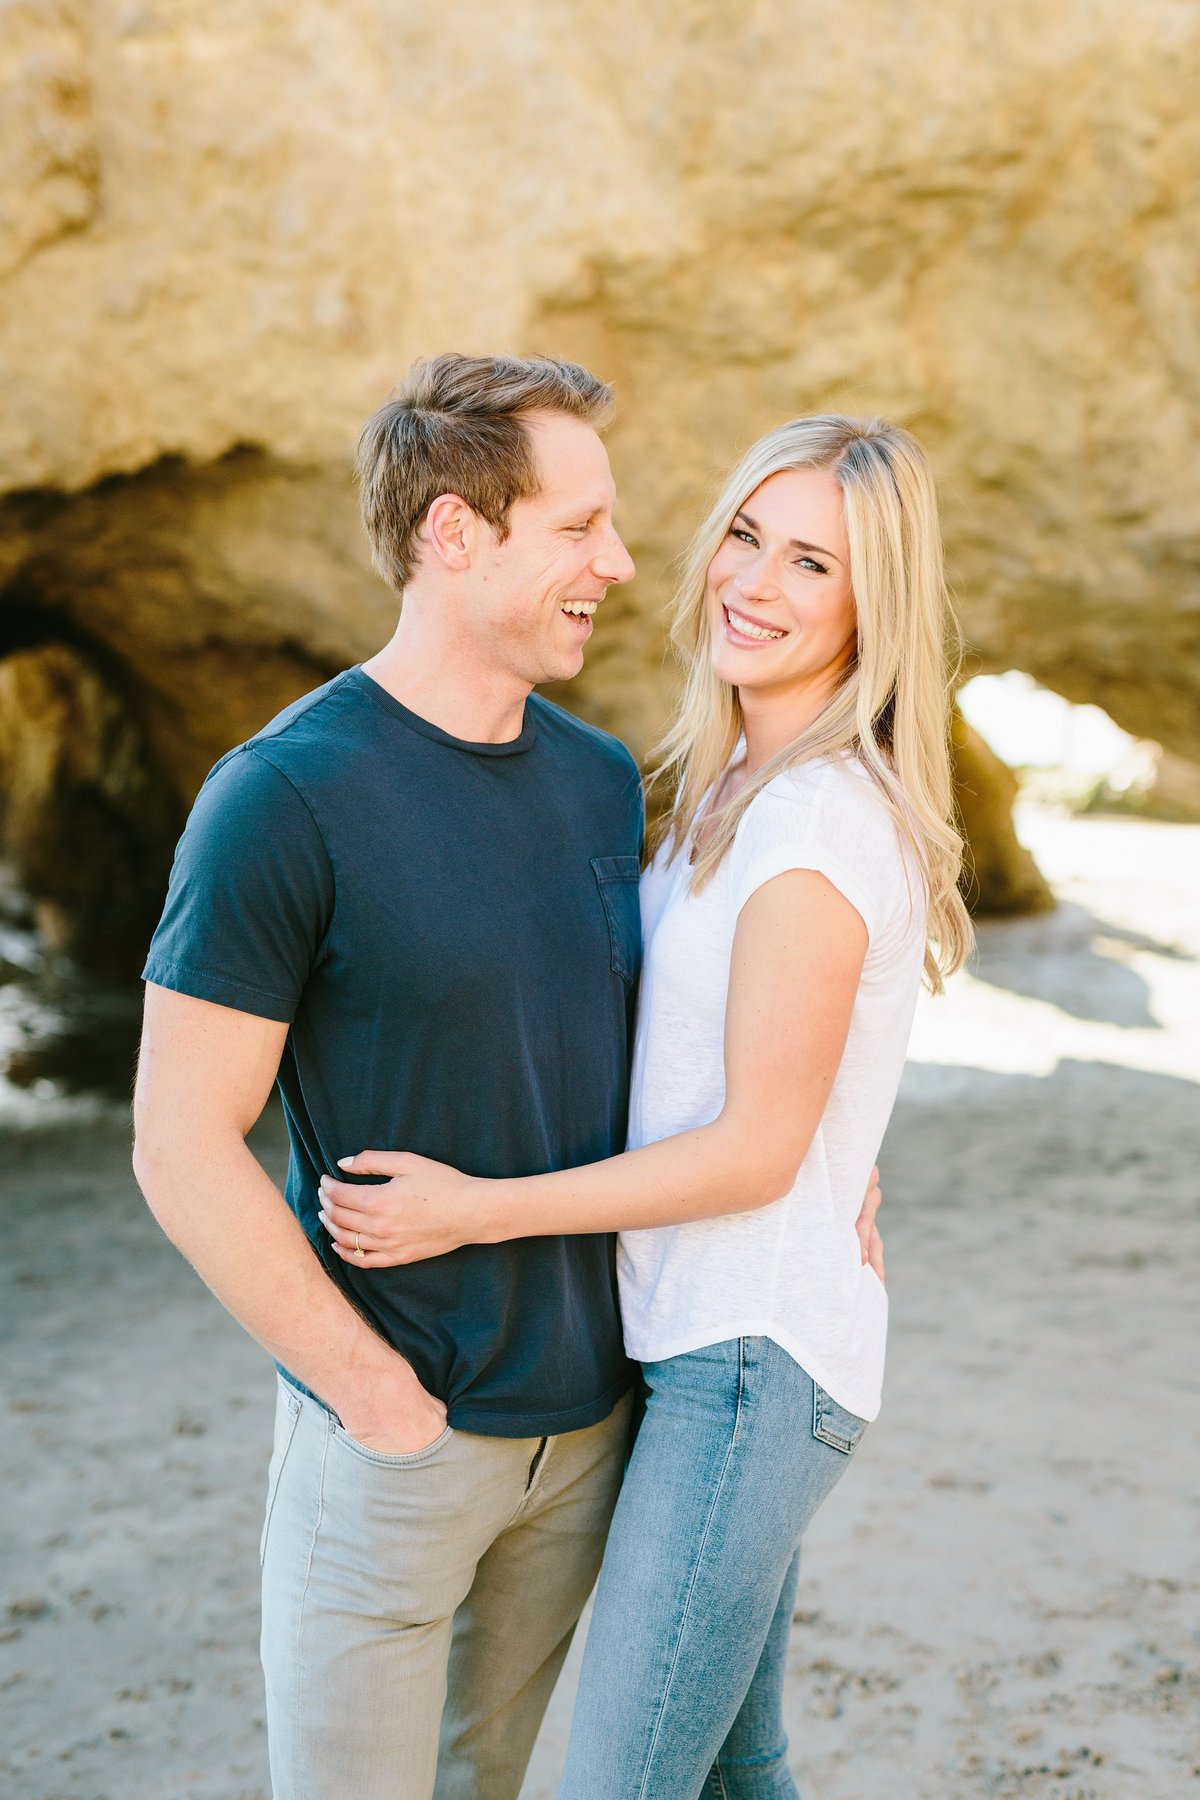 Best California Engagement Photographer_Jodee Debes Photography_138